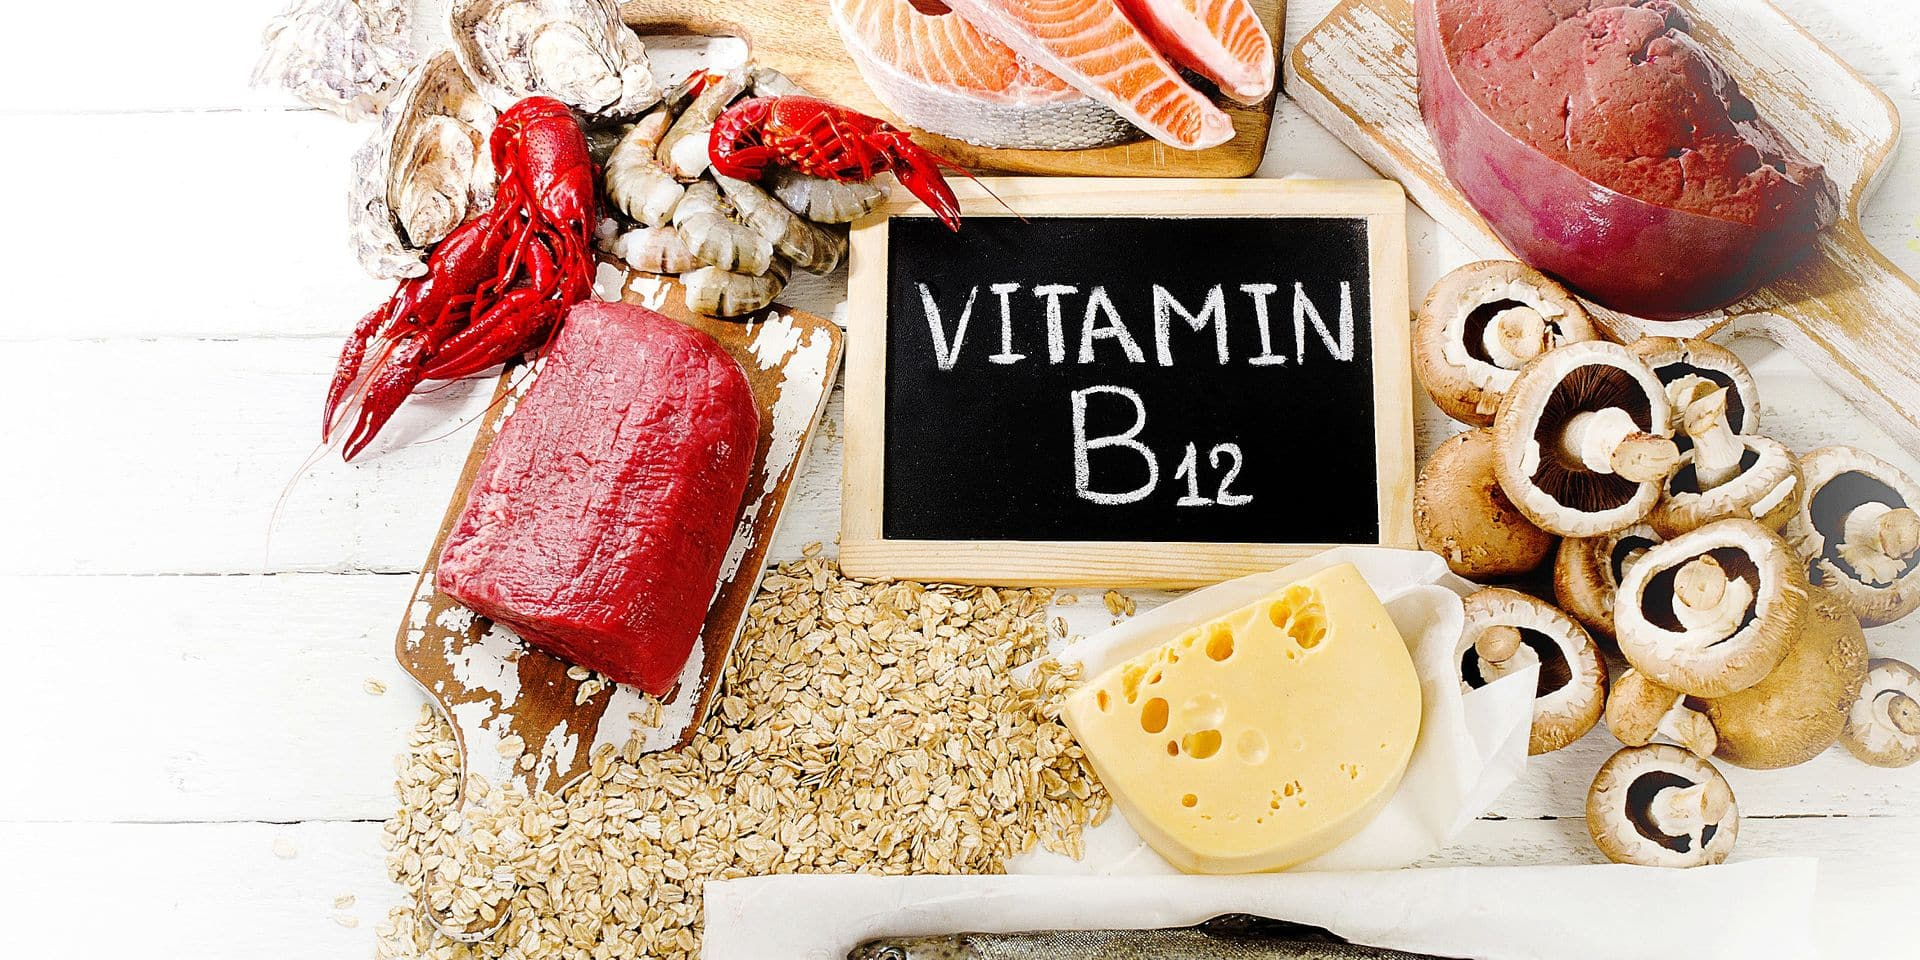 On a tous besoin de vitamine B12: comment faire le plein ?